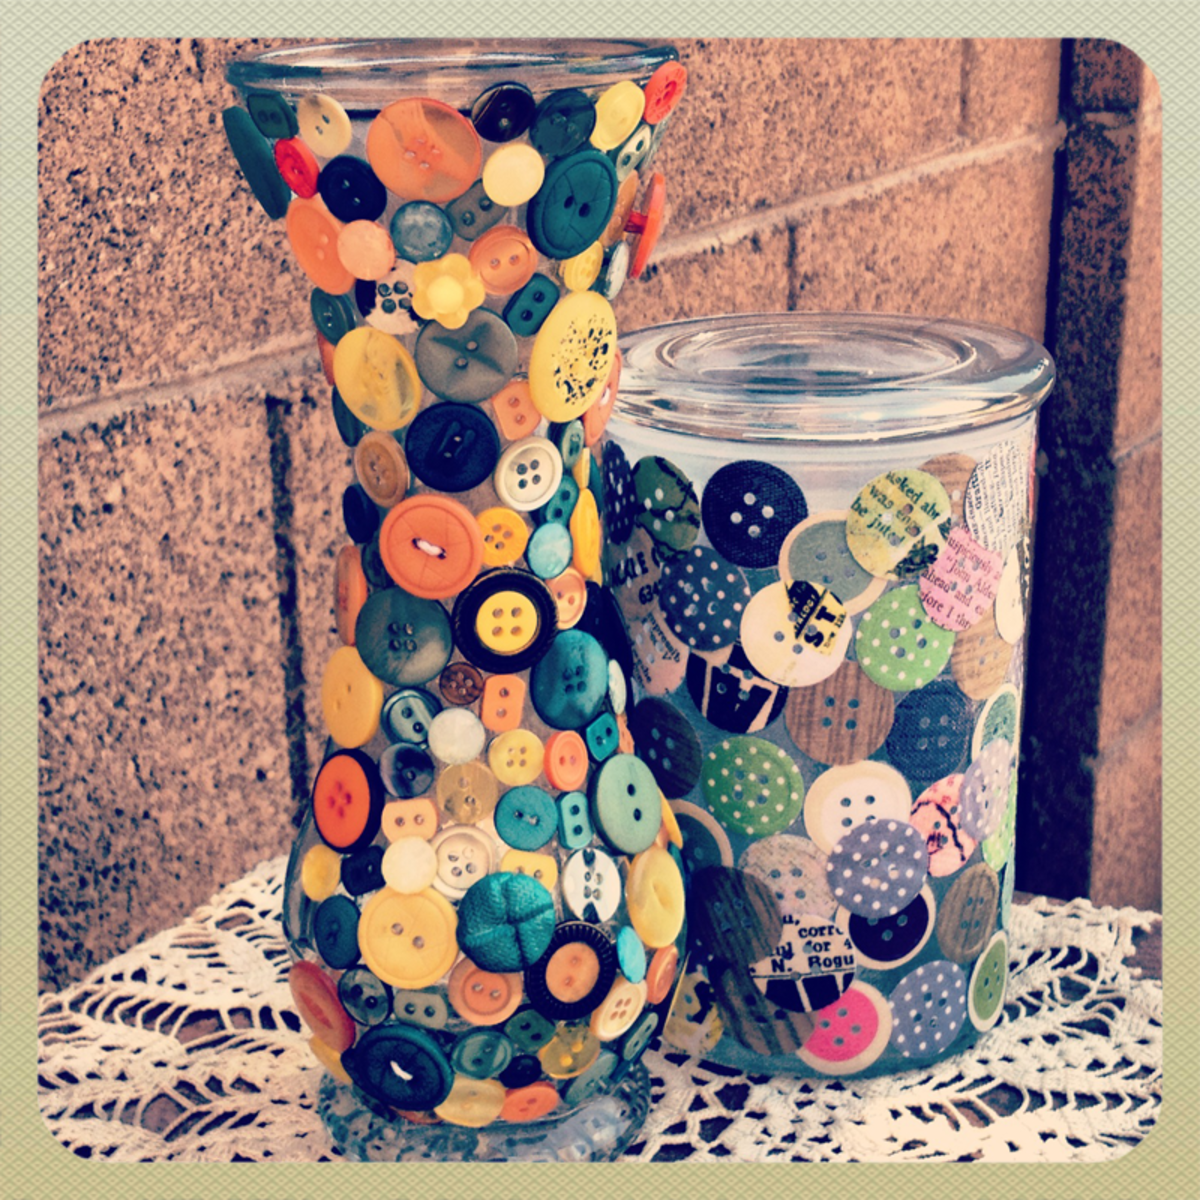 Vase and jar covered in buttons